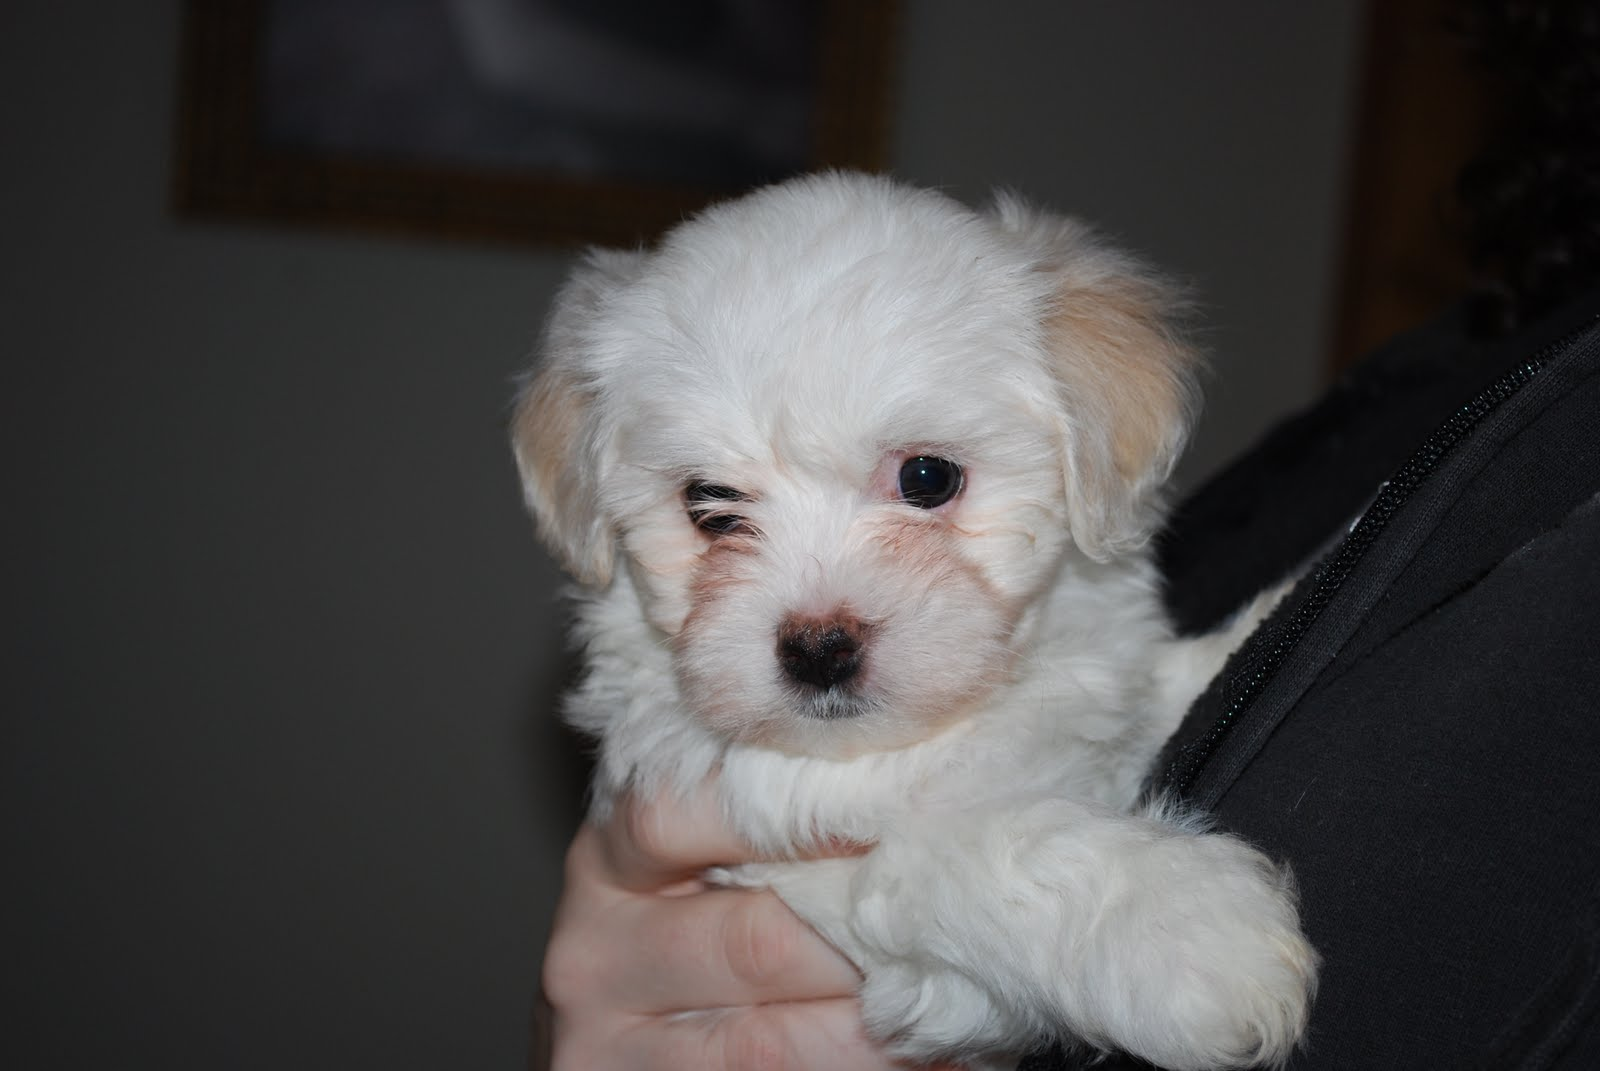 Havanese Puppies And Dogs Pictures Gallery - Pictures Of ...